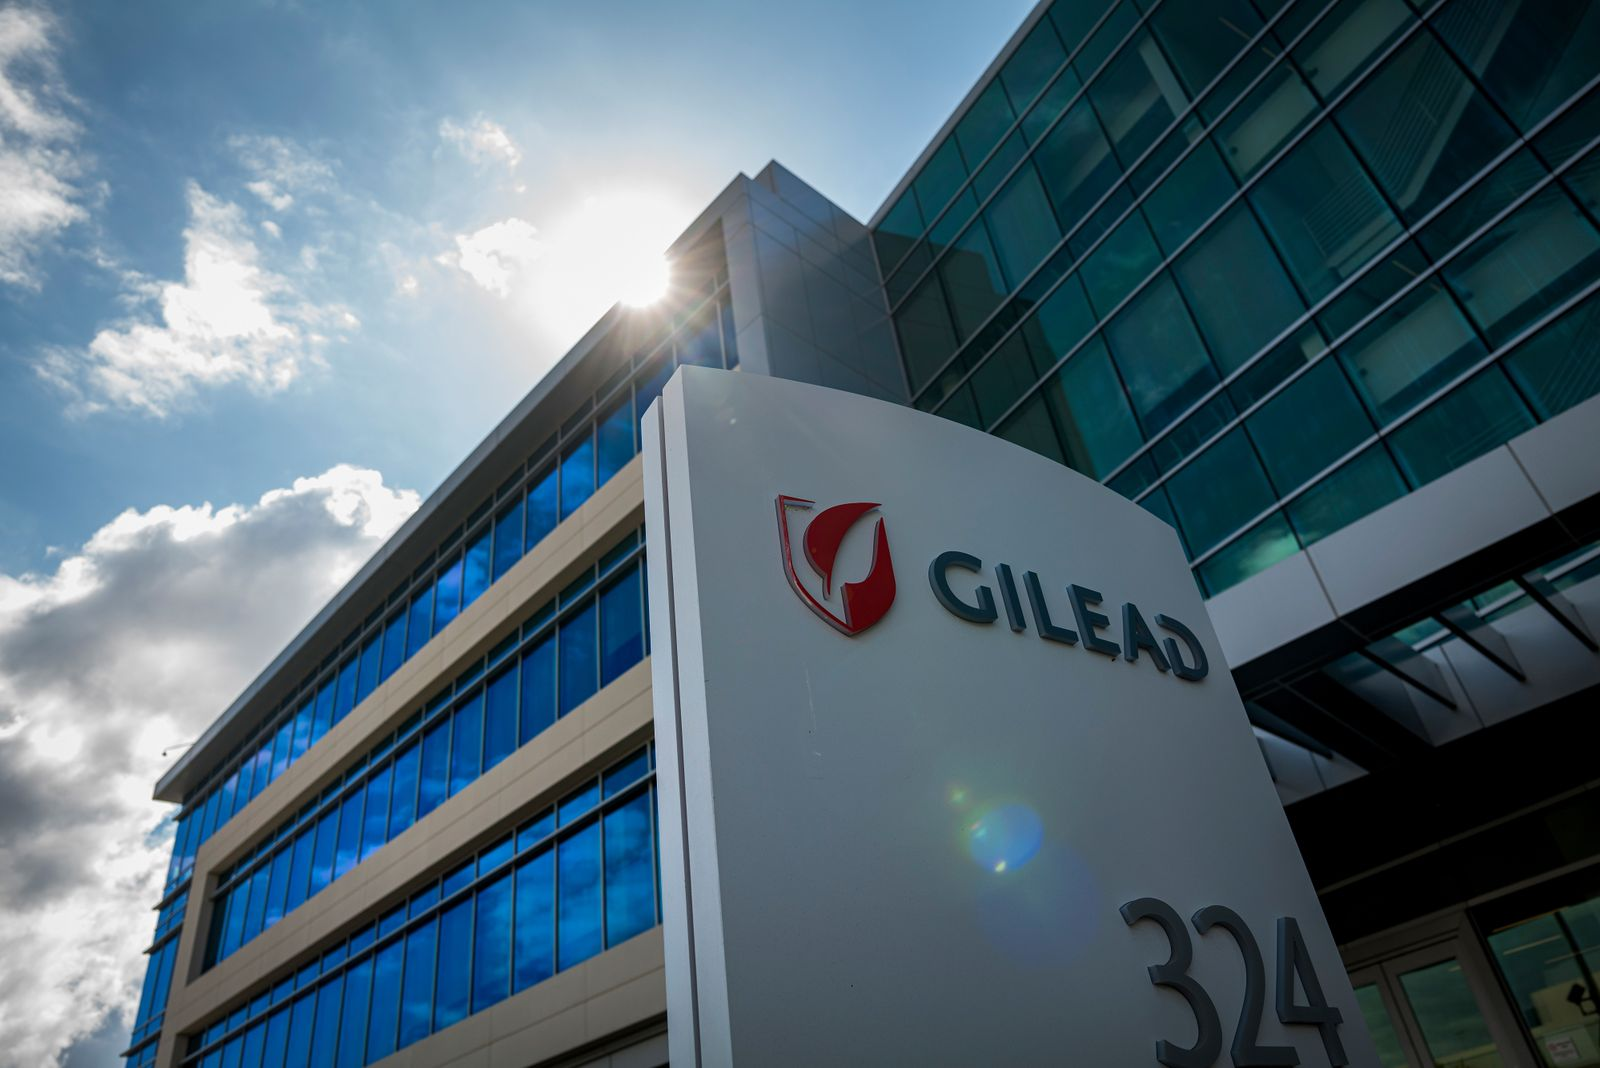 Gilead Sciences Headquarters As Jumps To Two-Year High On Covid-19 Drug Hopes